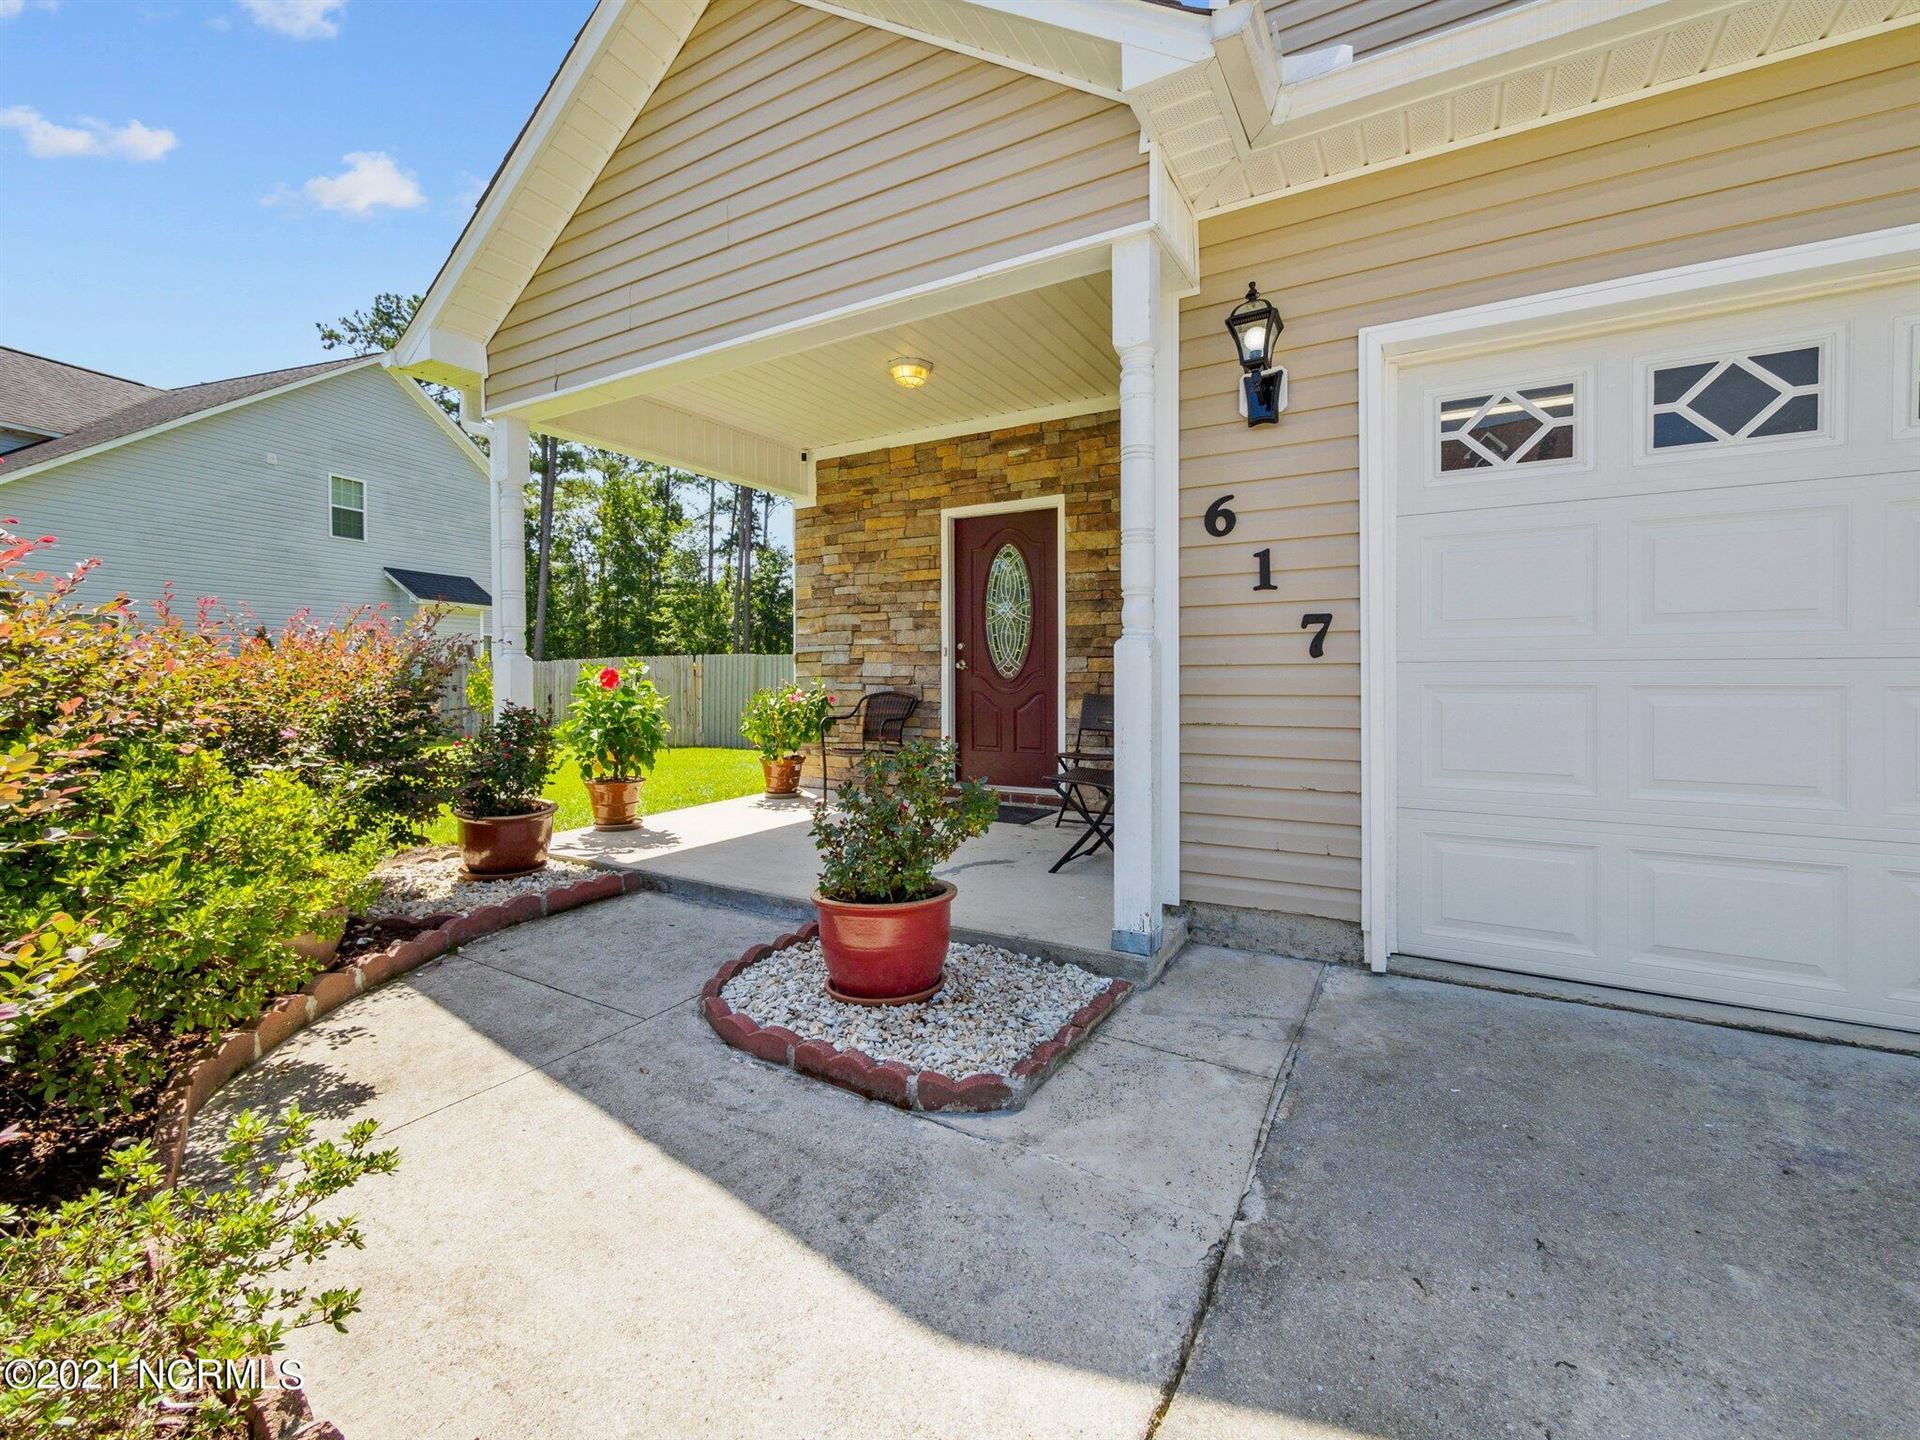 Photo of 617 Stagecoach Drive, Jacksonville, NC 28546 (MLS # 100289283)